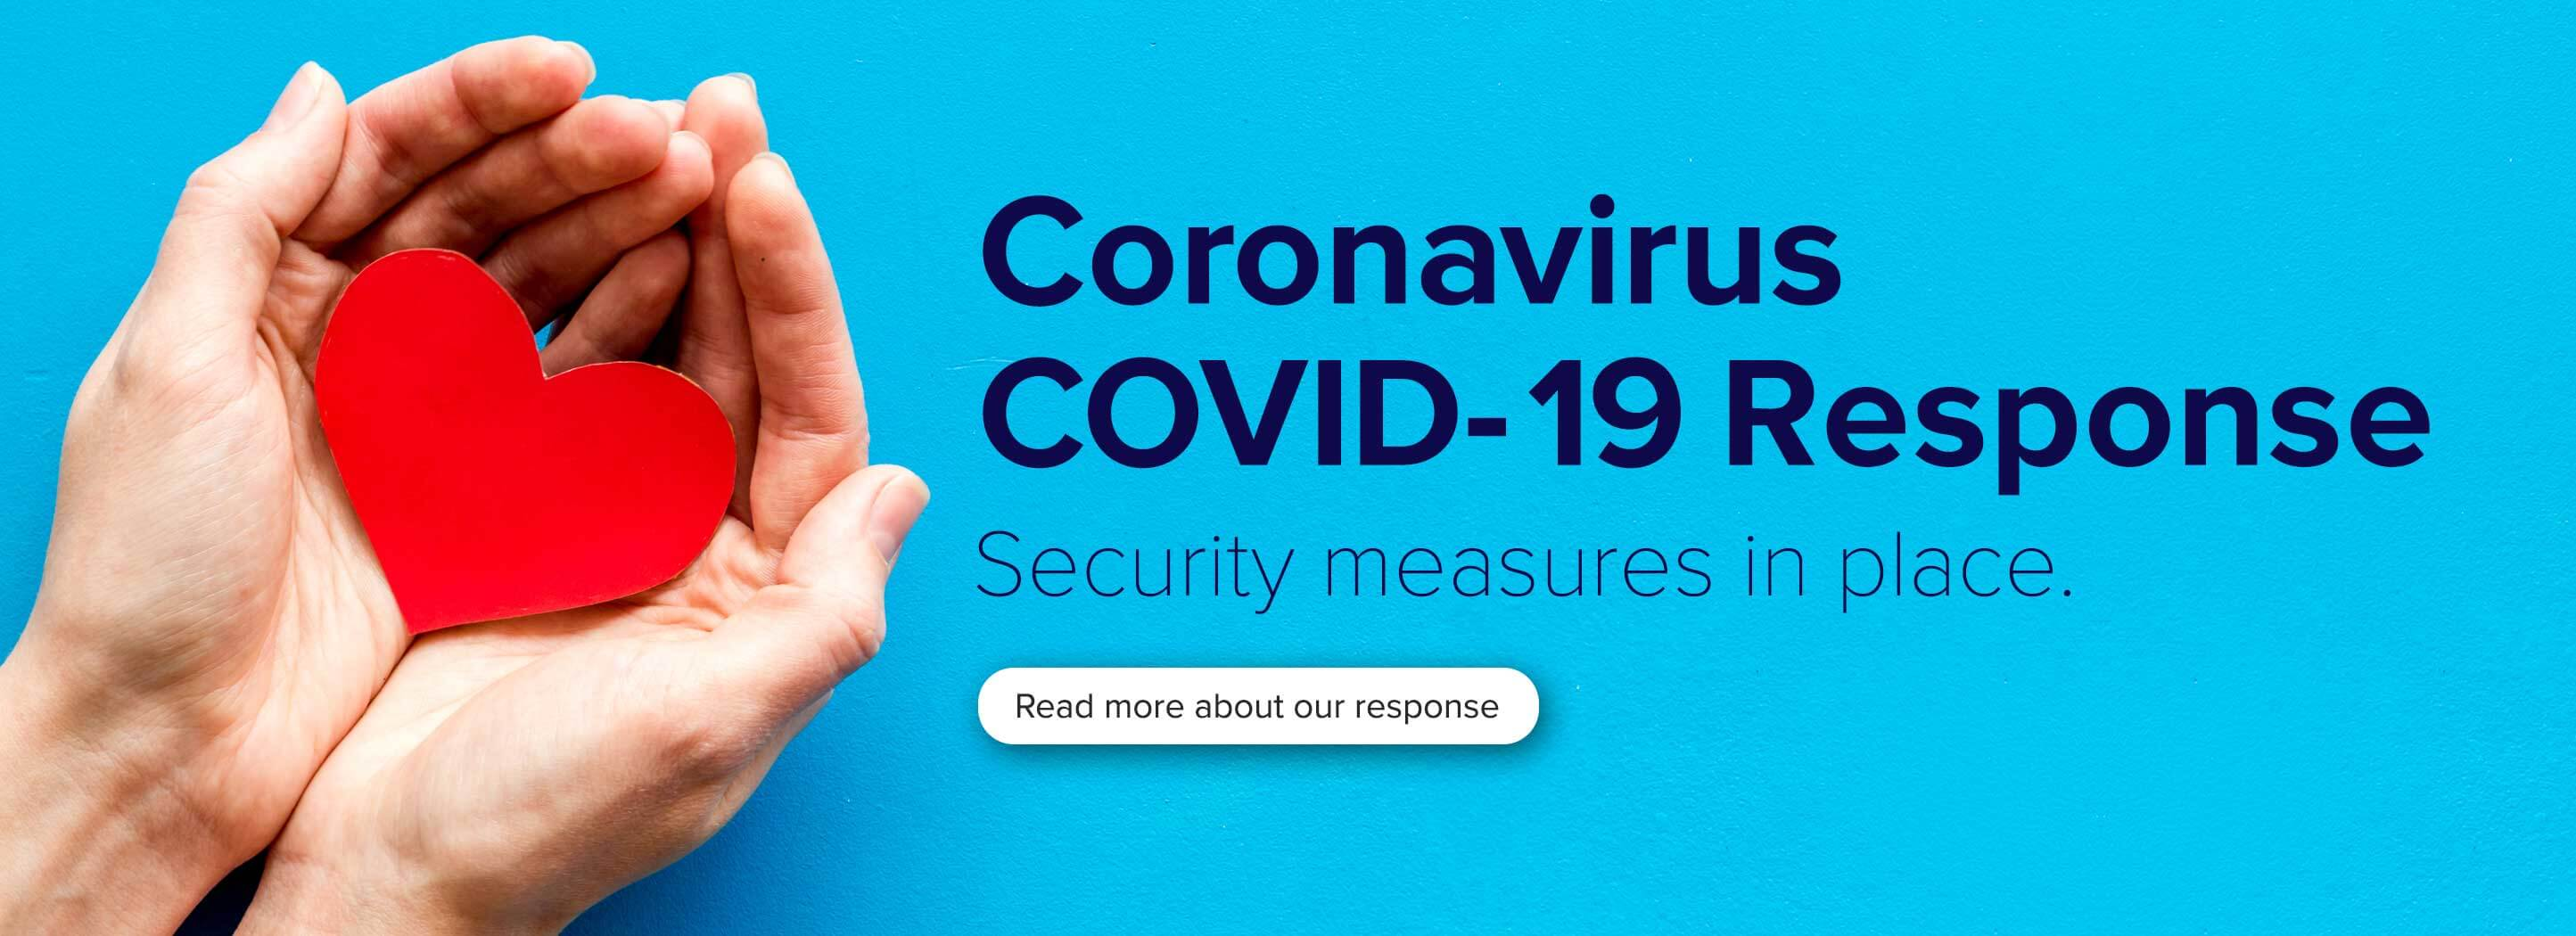 Coronavirus Covid-19 Response Security Measures in place. Read more about our response